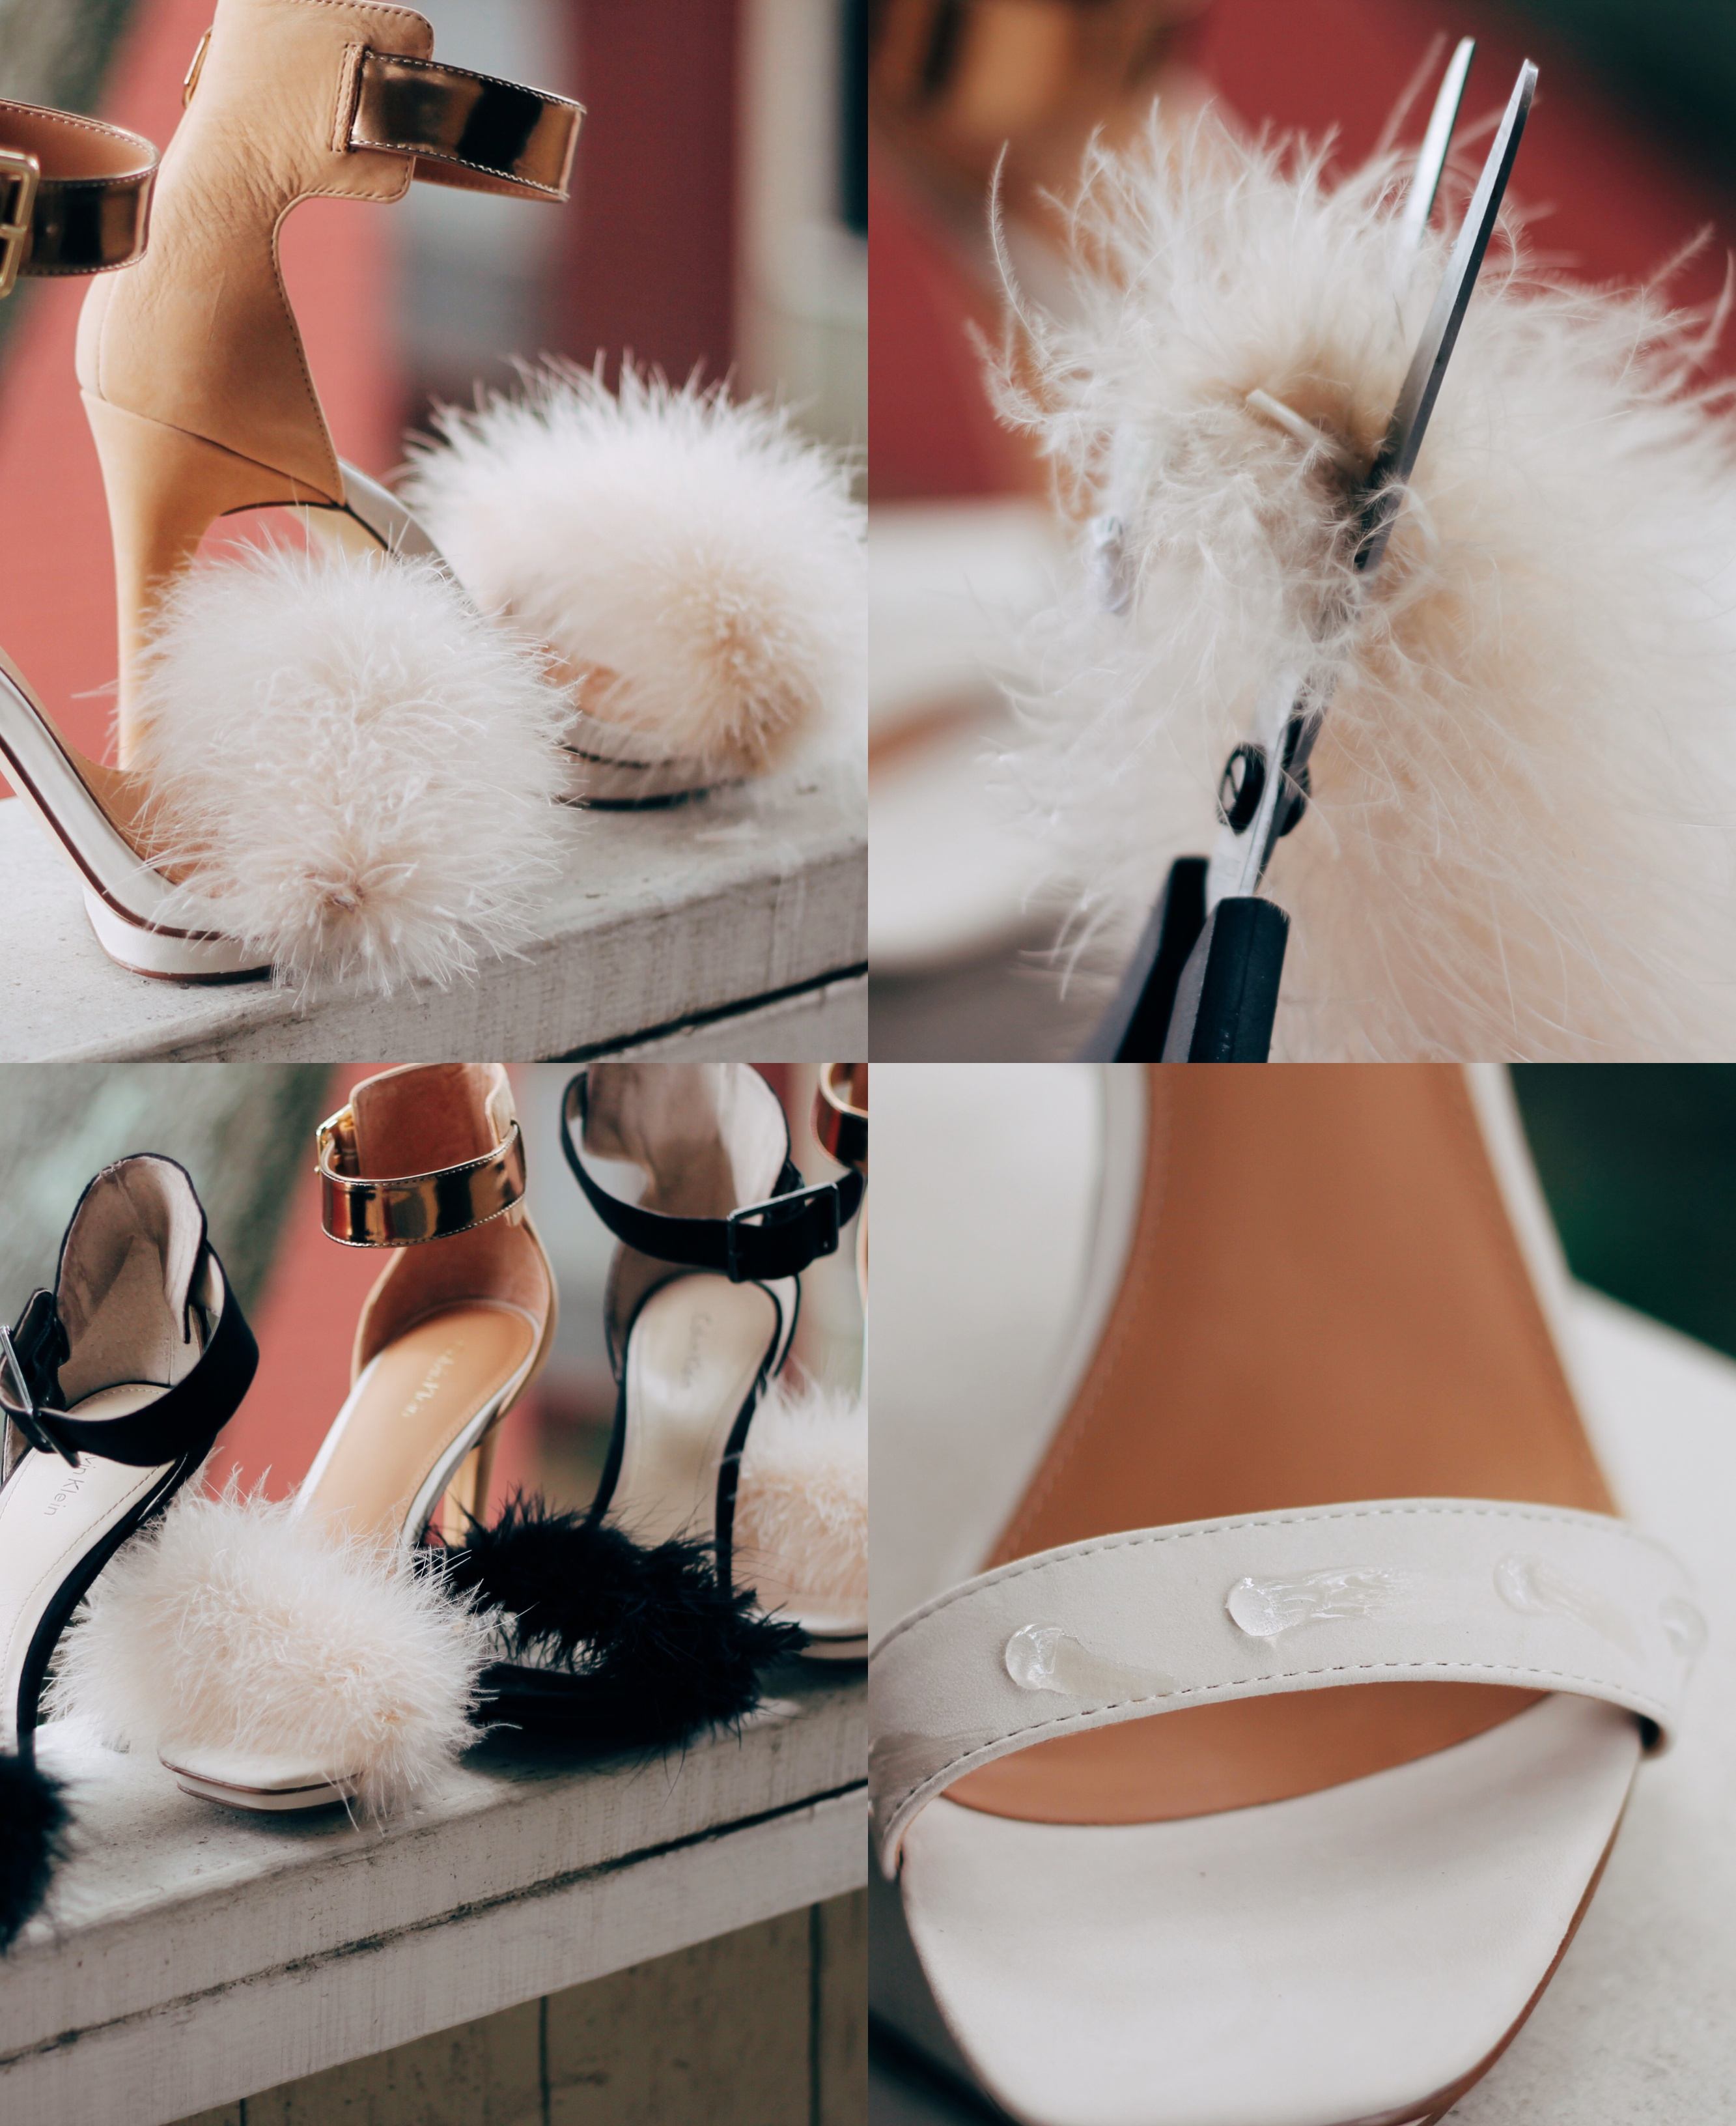 diy how to make faux fur strappy heeled sandals TOPSHOP Pink Rabbit Faux-Fur Fluffy Sandals, kim kardashian fur shoes, how to make pretty shoes, lifestyle blogger, houston blogger, ugandan blogger, fashion blogger